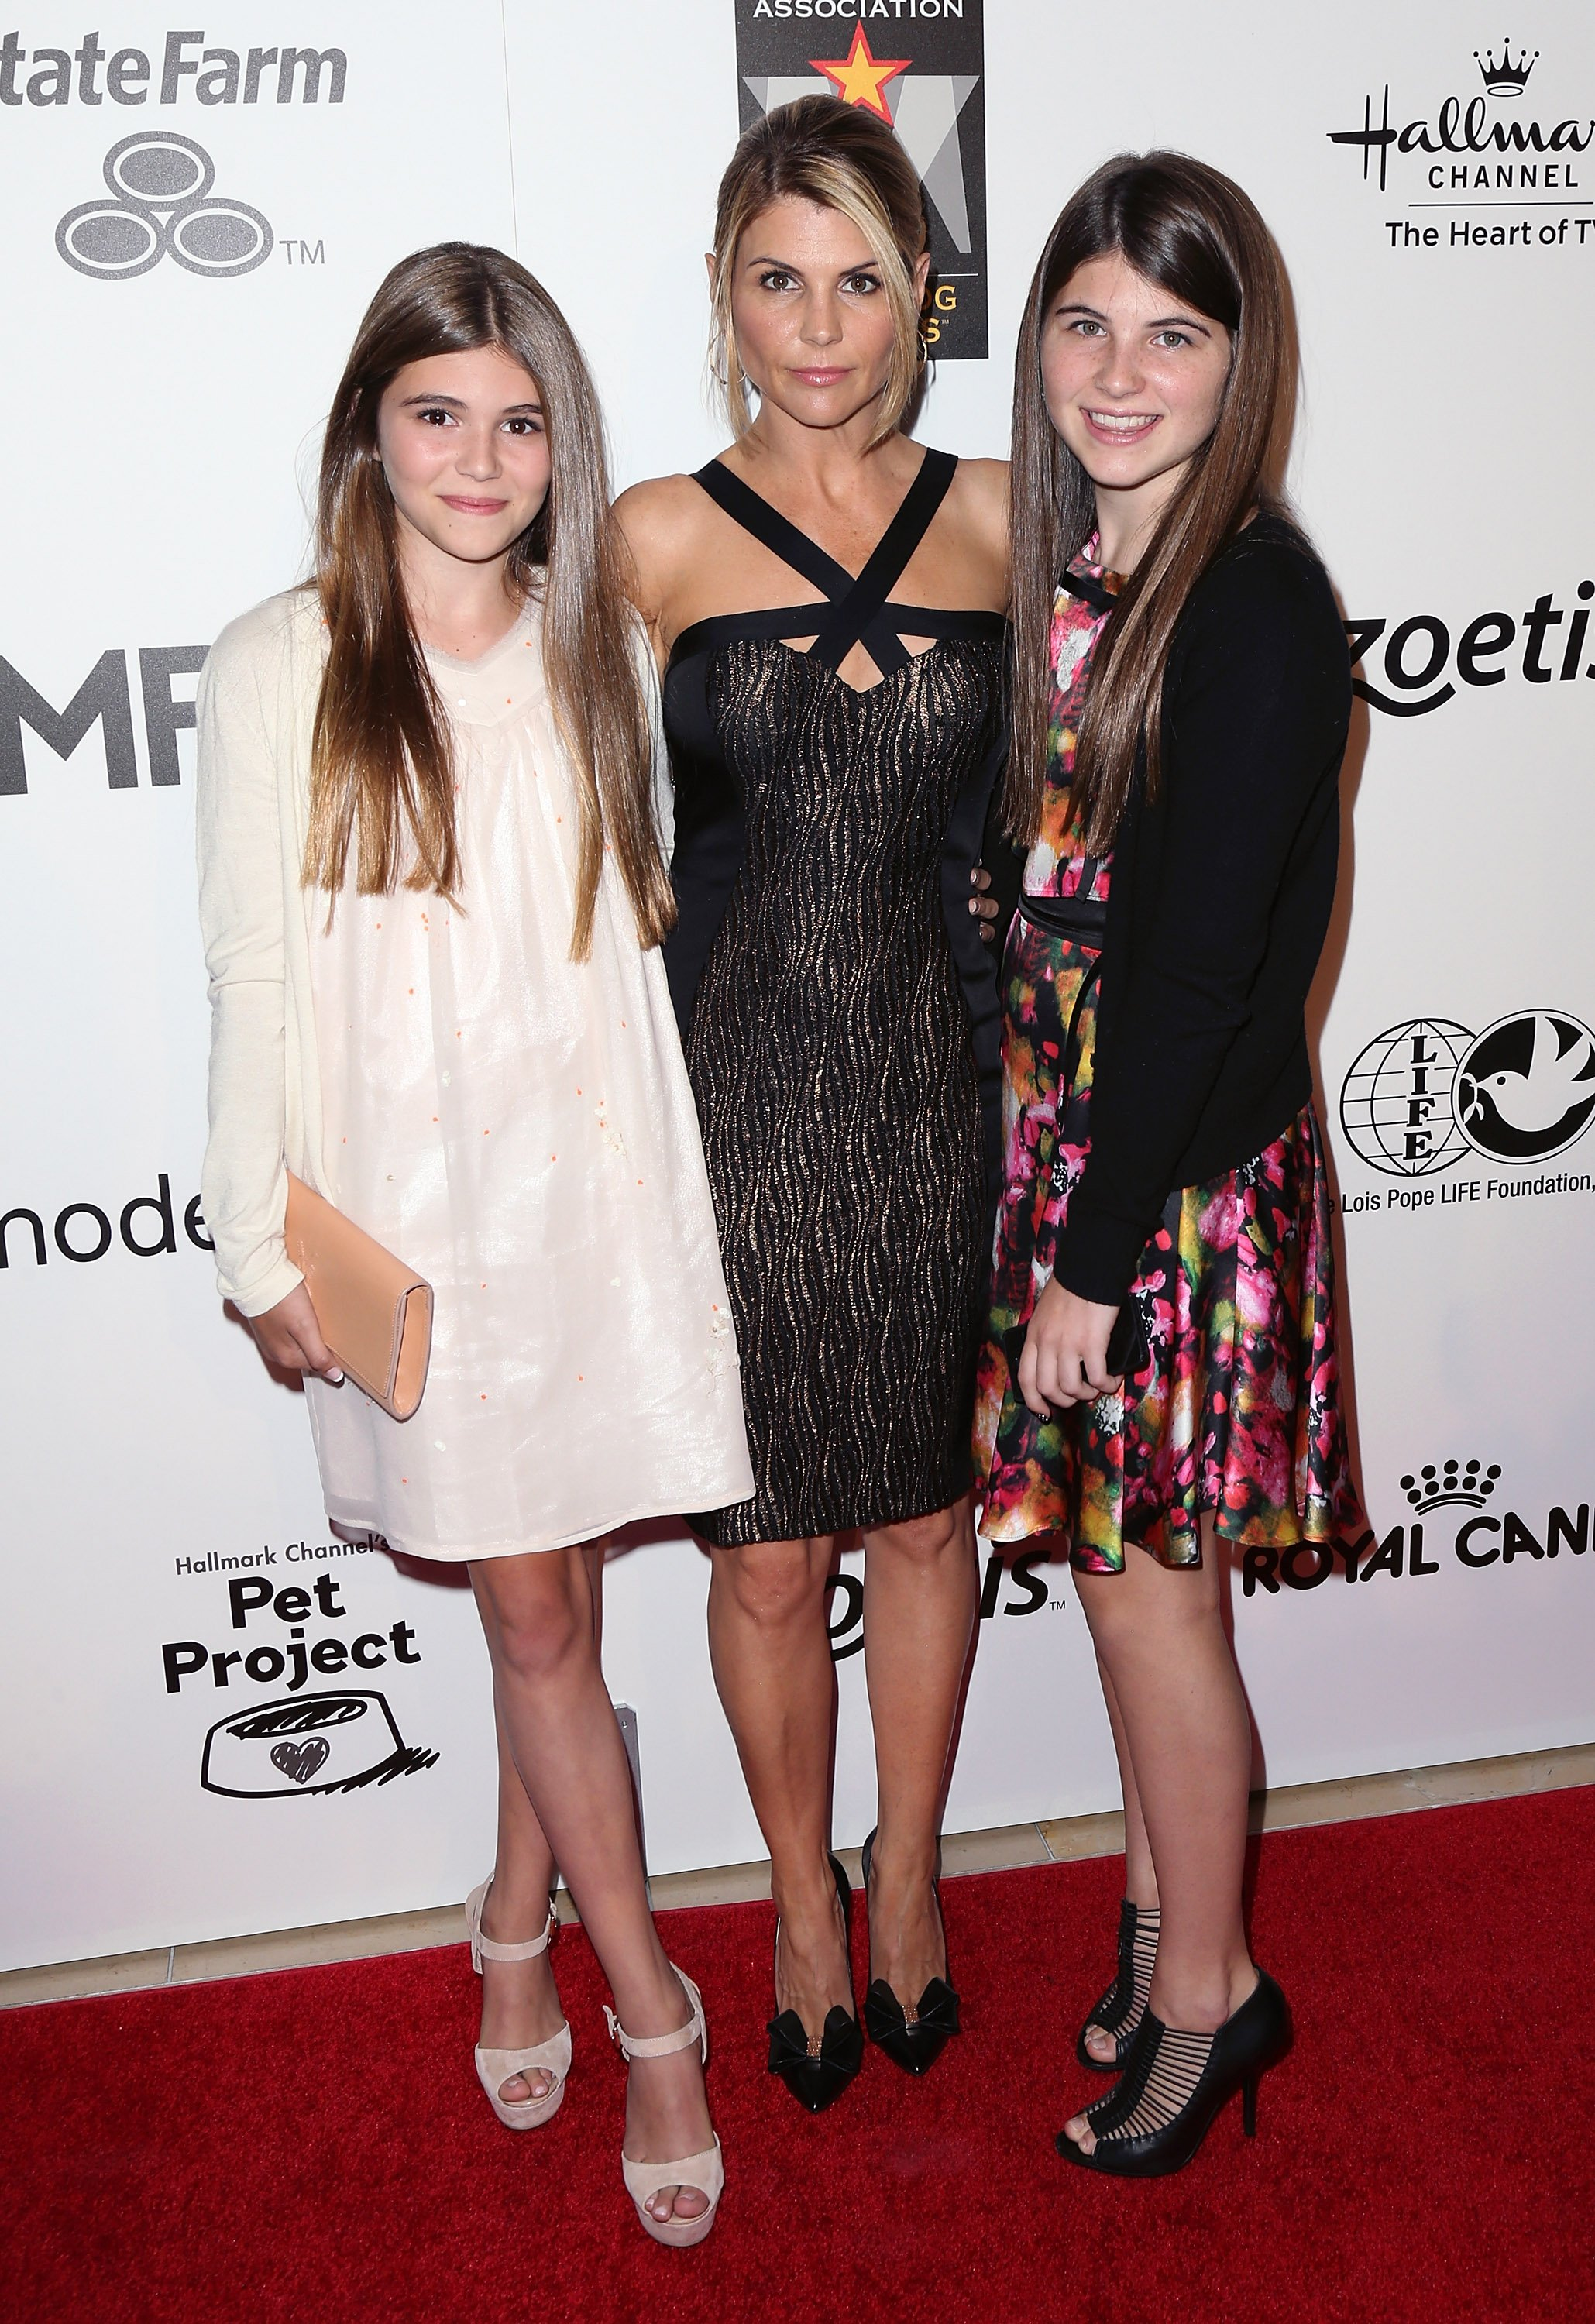 Lori Loughlin and her two daughters Olivia Jade Giannulli and Isabella Rose Giannulli | Photo: Getty Images